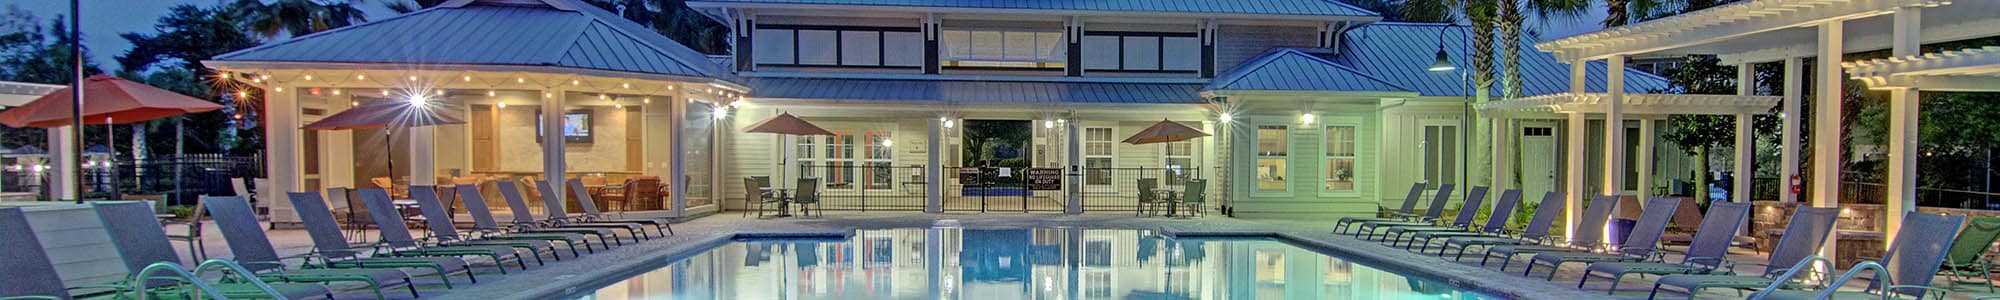 Pet friendly apartments in Panama City Beach, FL